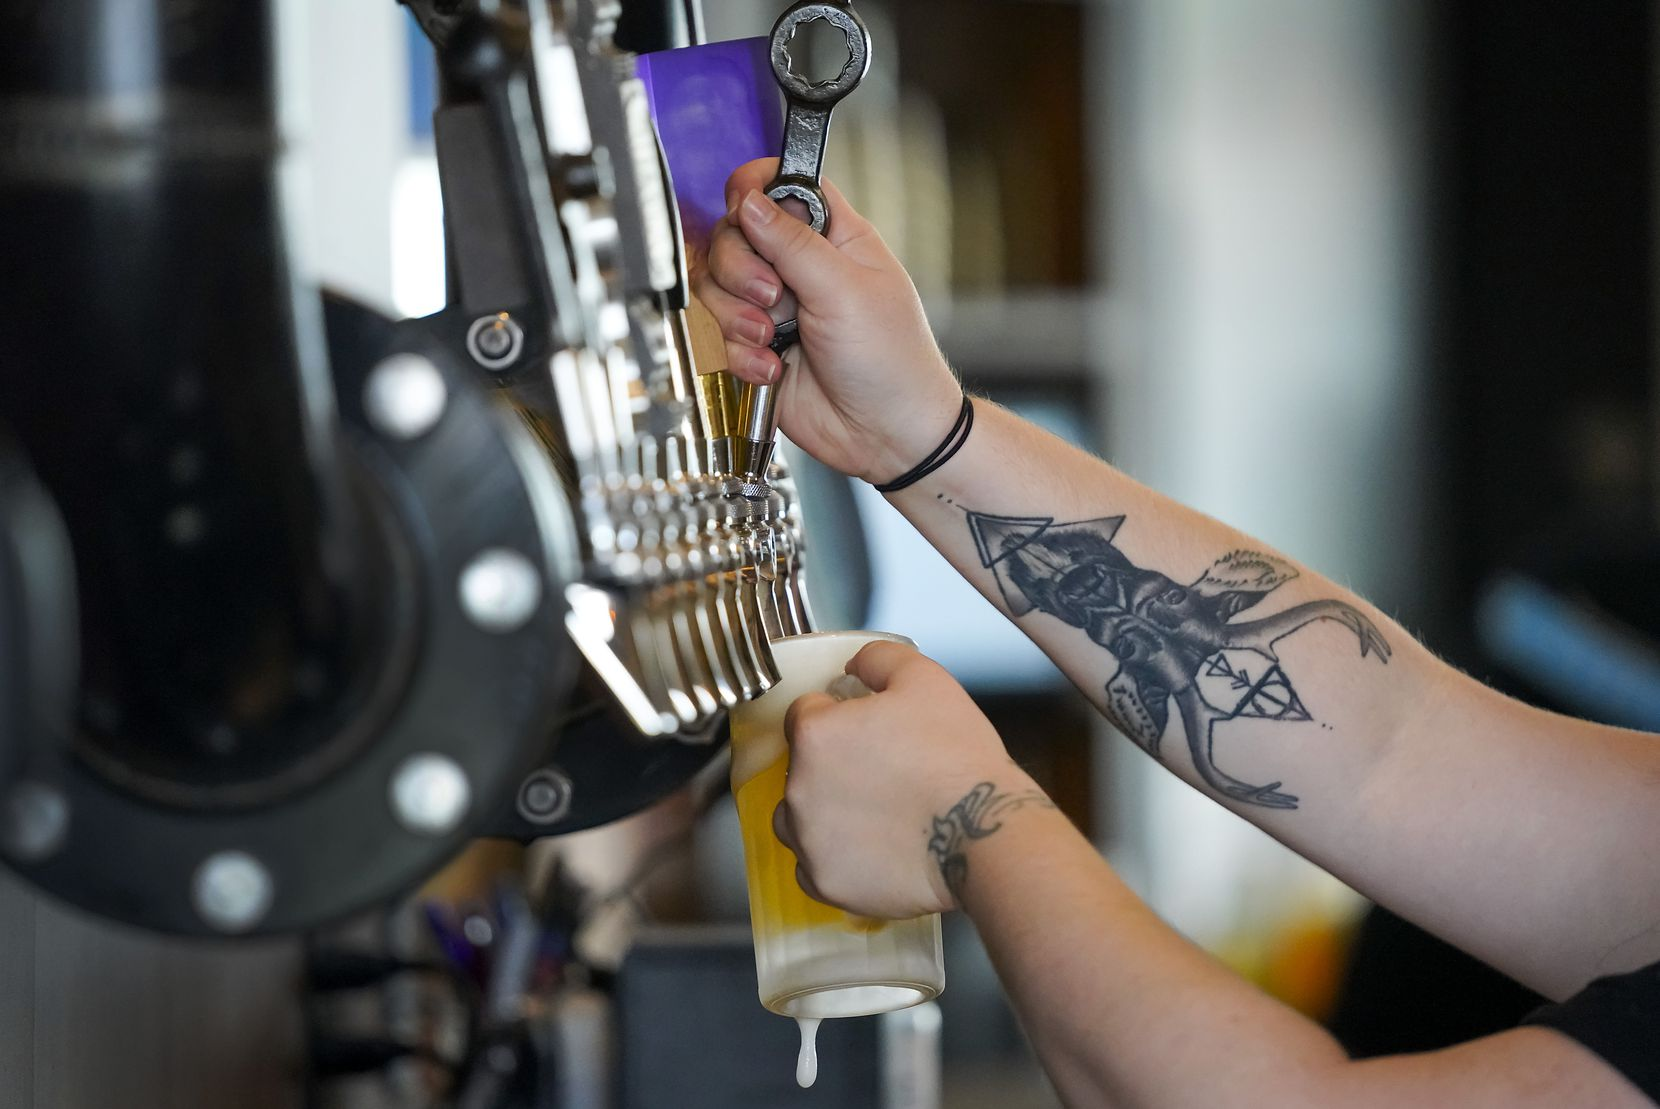 Stephanie Welch fills a beer at Thunderbird Station, which opened Sept. 17, 2020 in Deep Ellum.